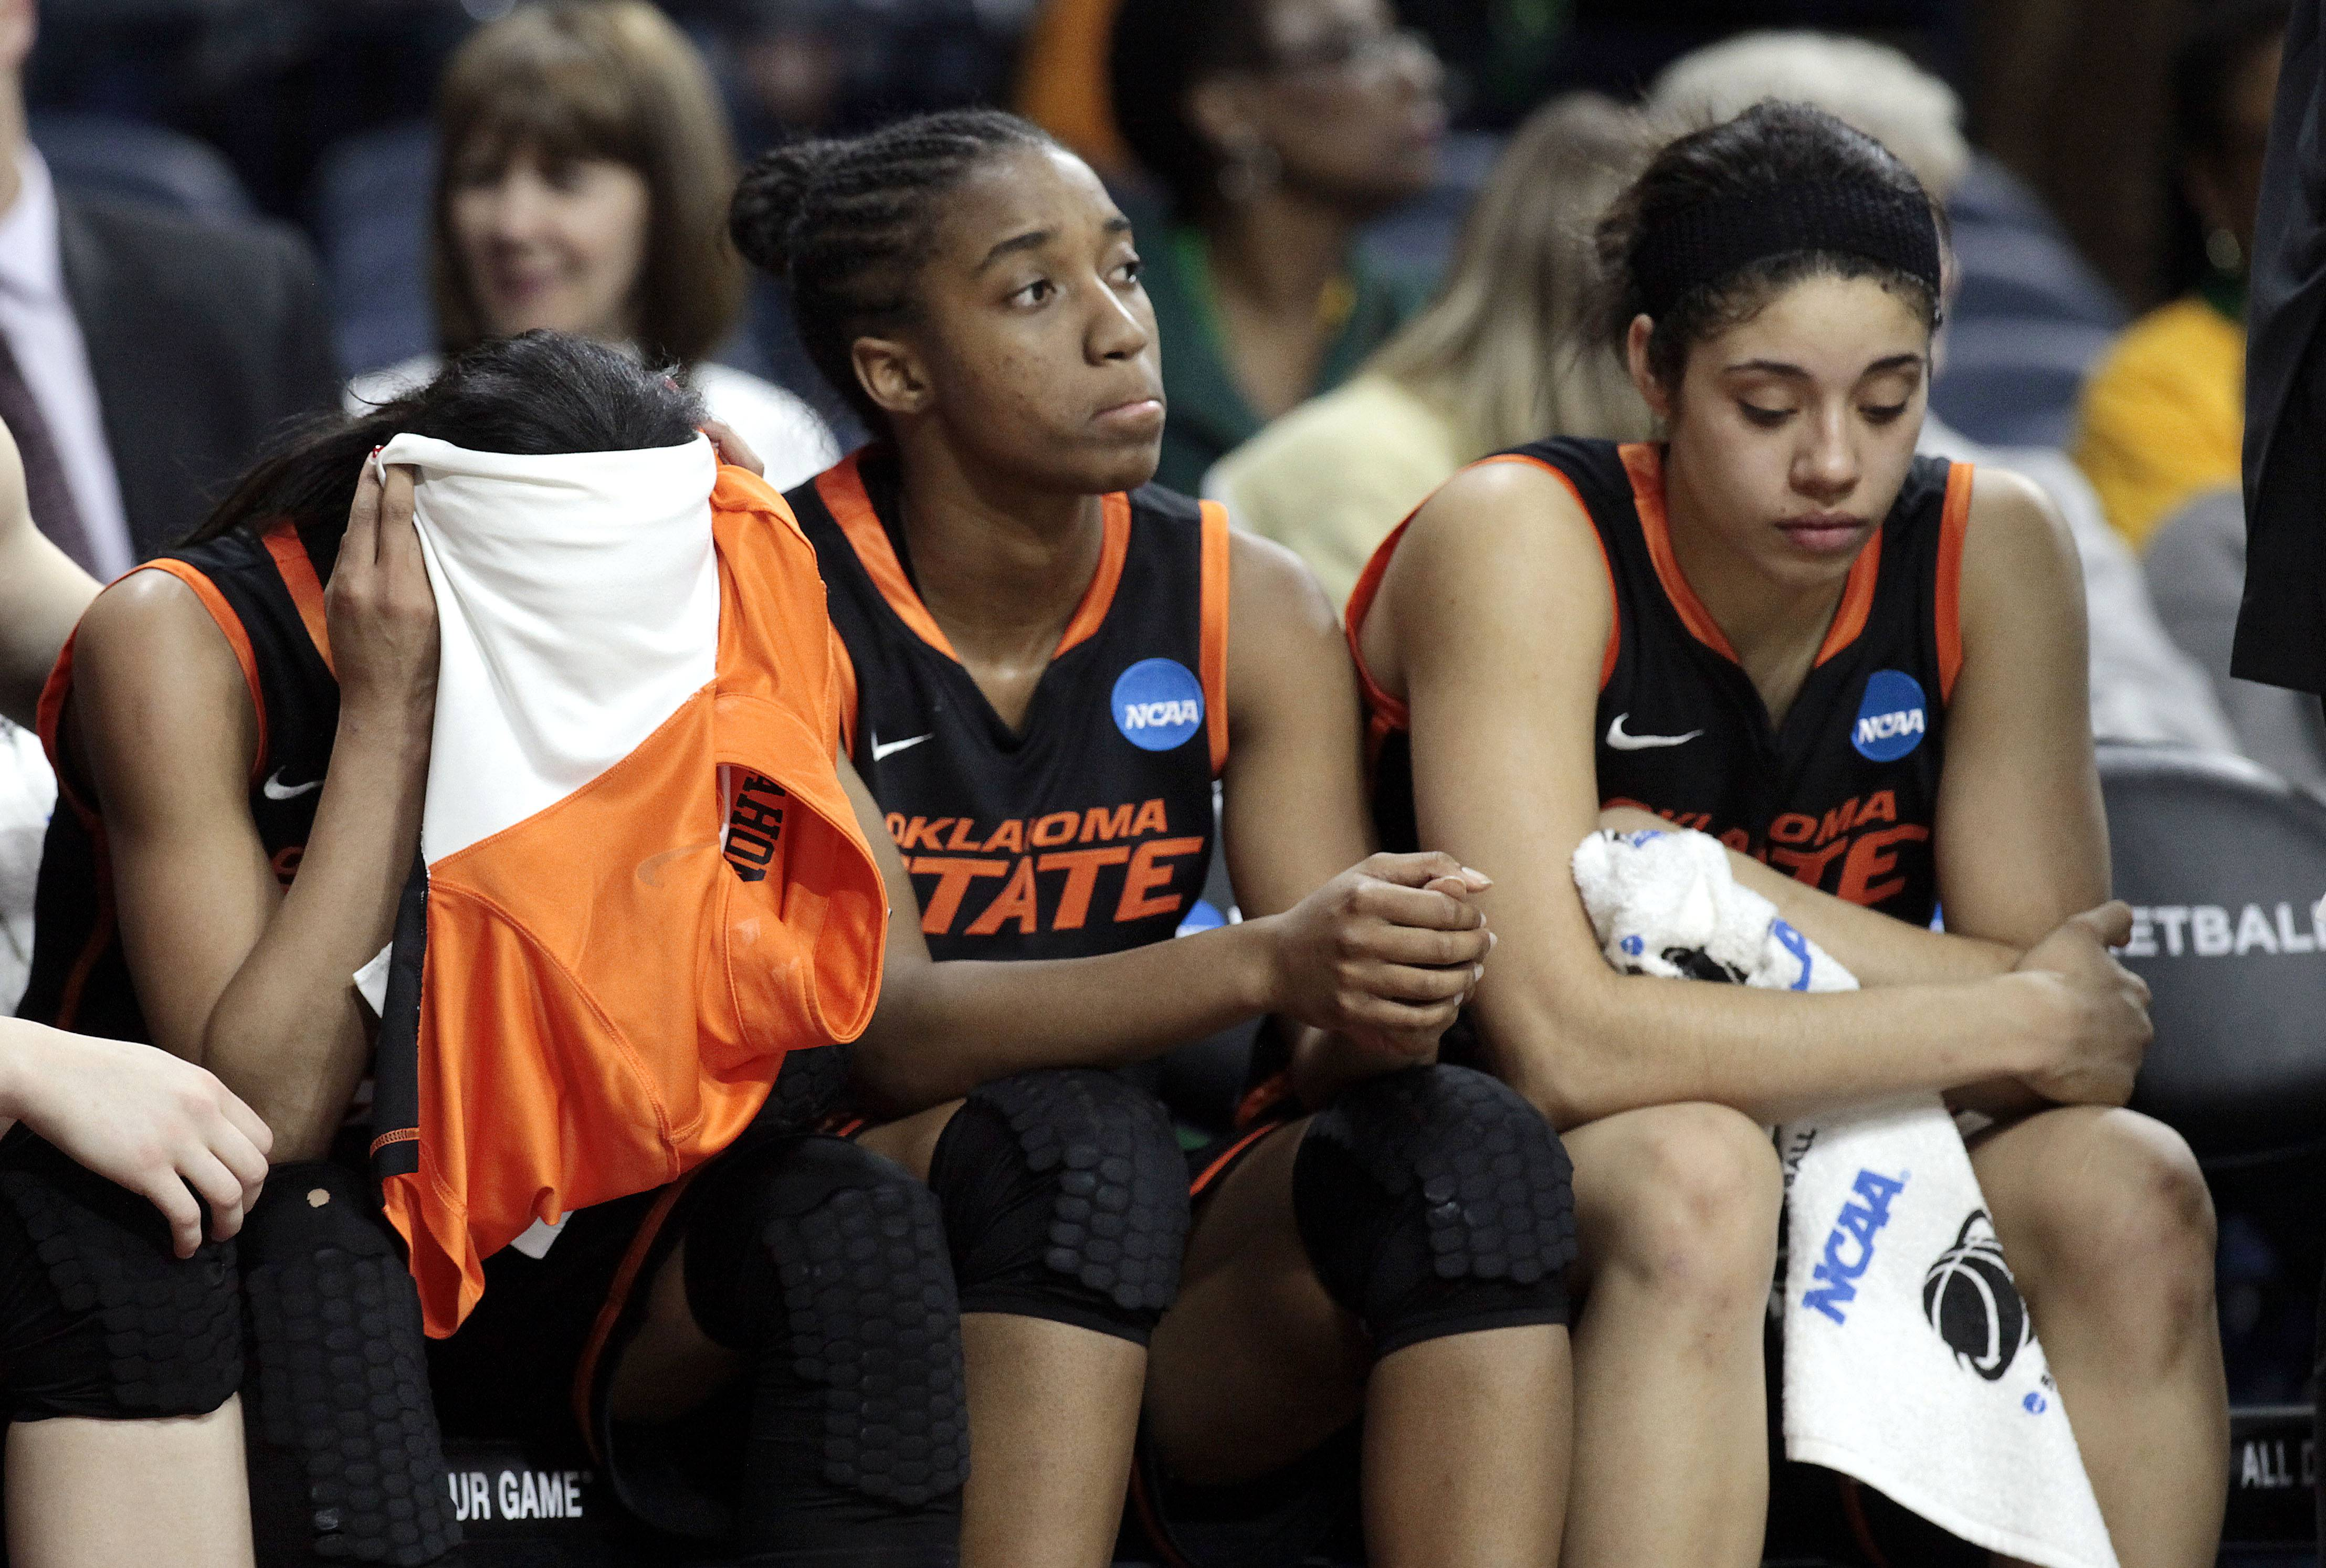 Oklahoma State players, from left, Tiffany Bias, Brittany Atkins and Brittney Martin sit on the bench during the closing moments against the Notre Dame in the second half.